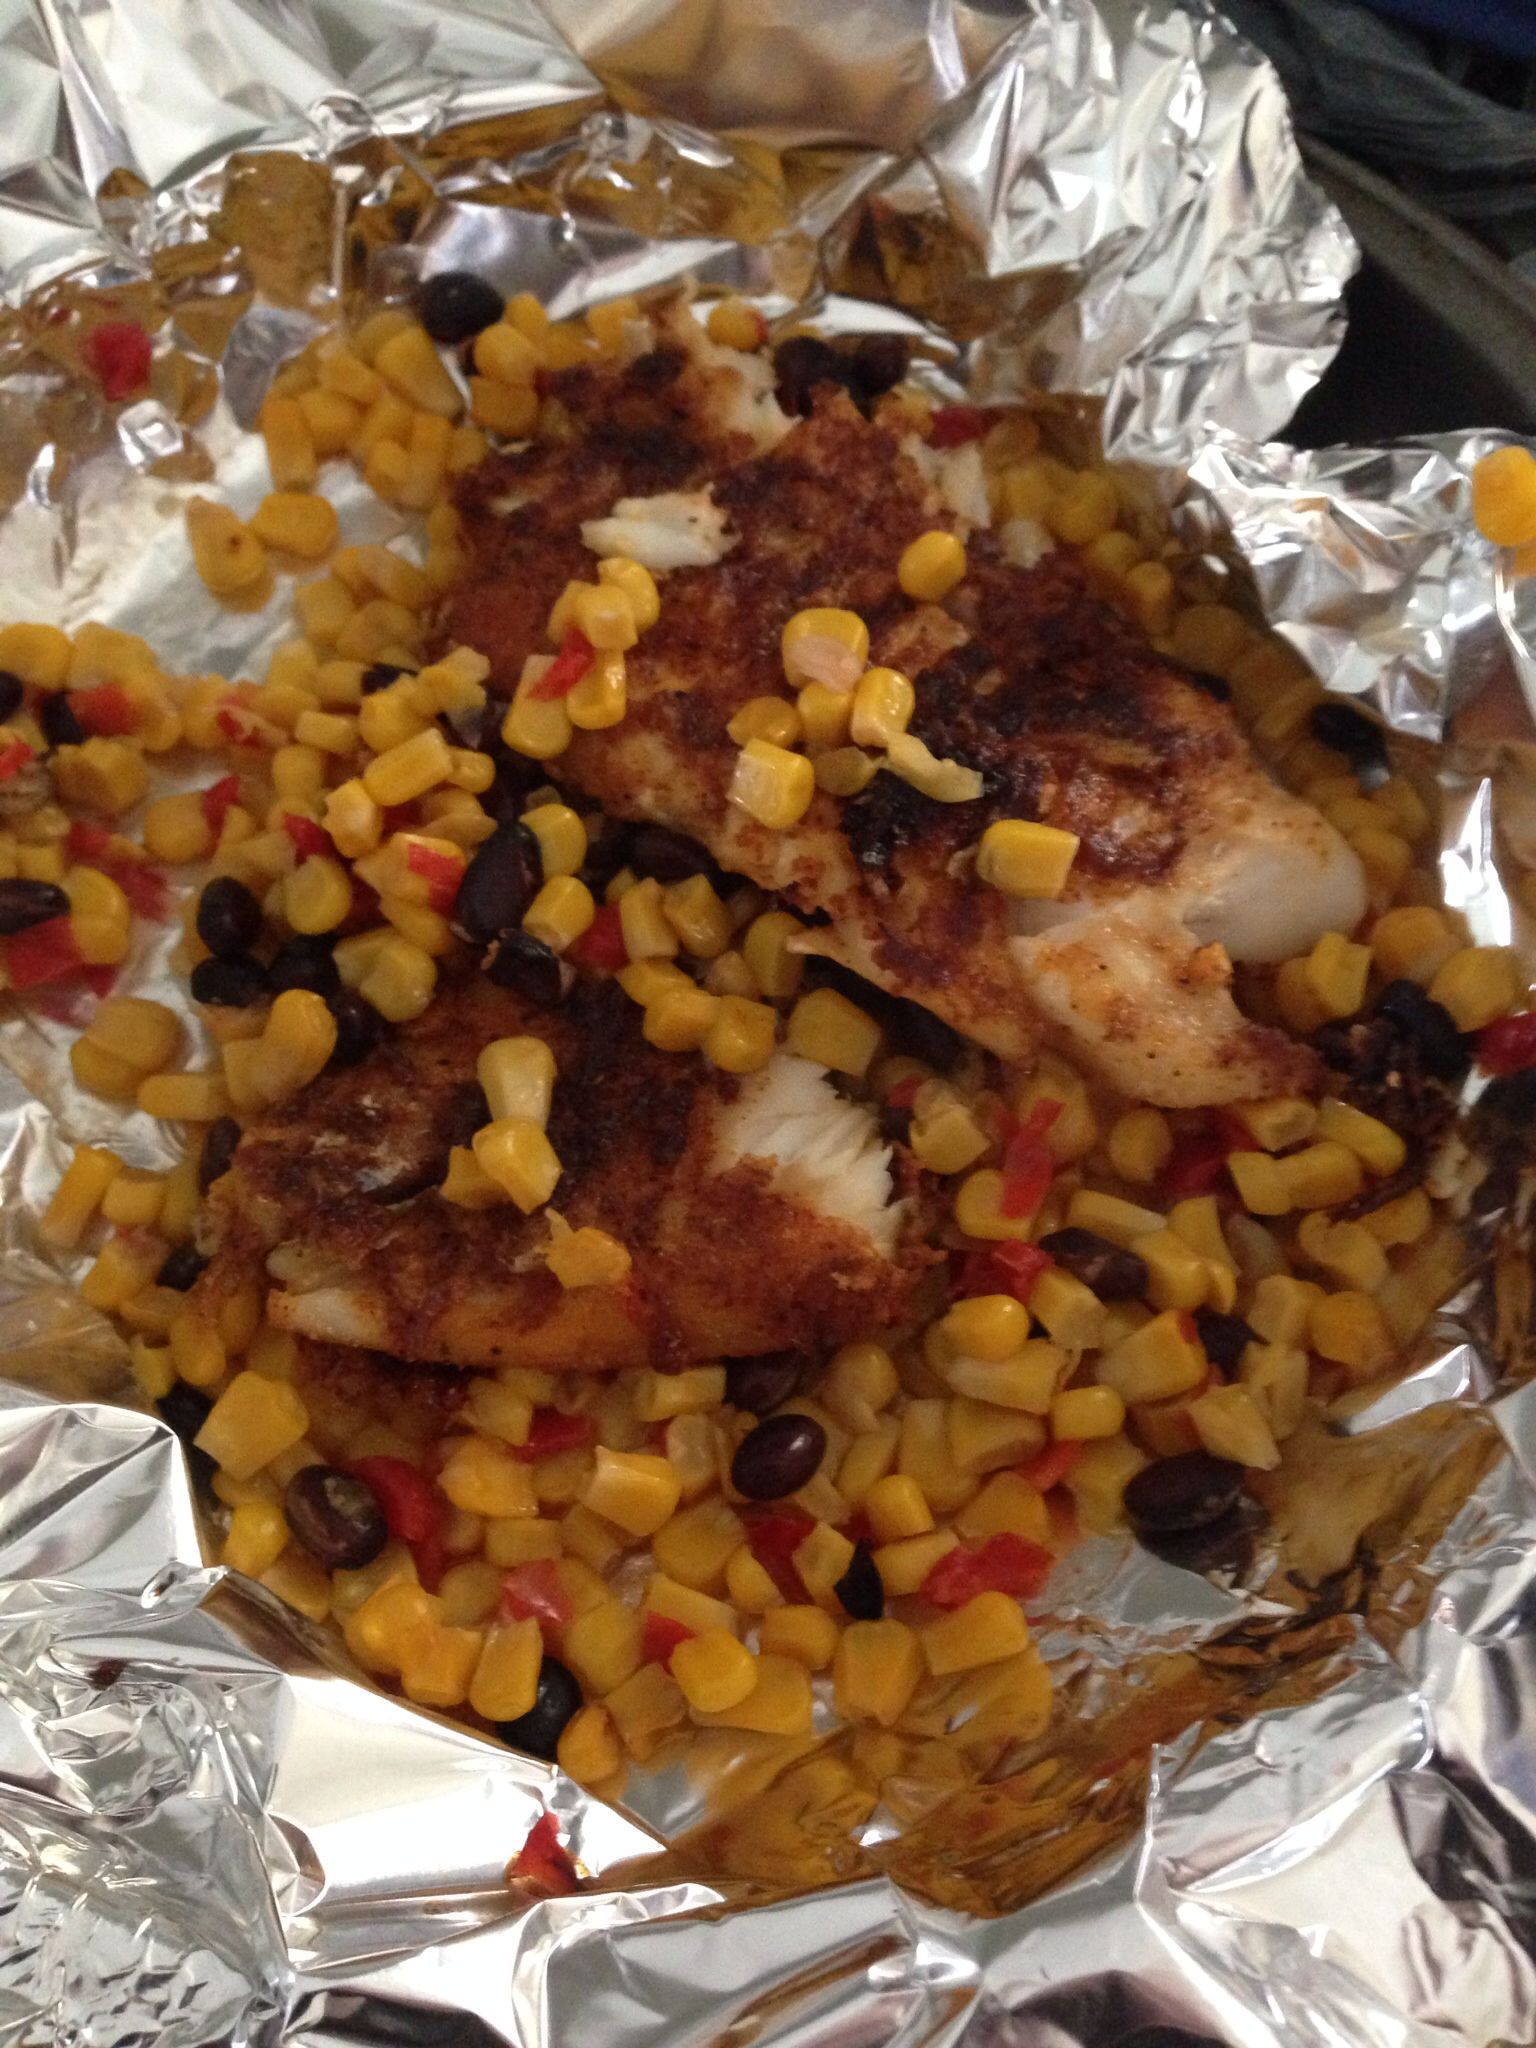 Chili lime Tilapia over a bed of roasted veggies